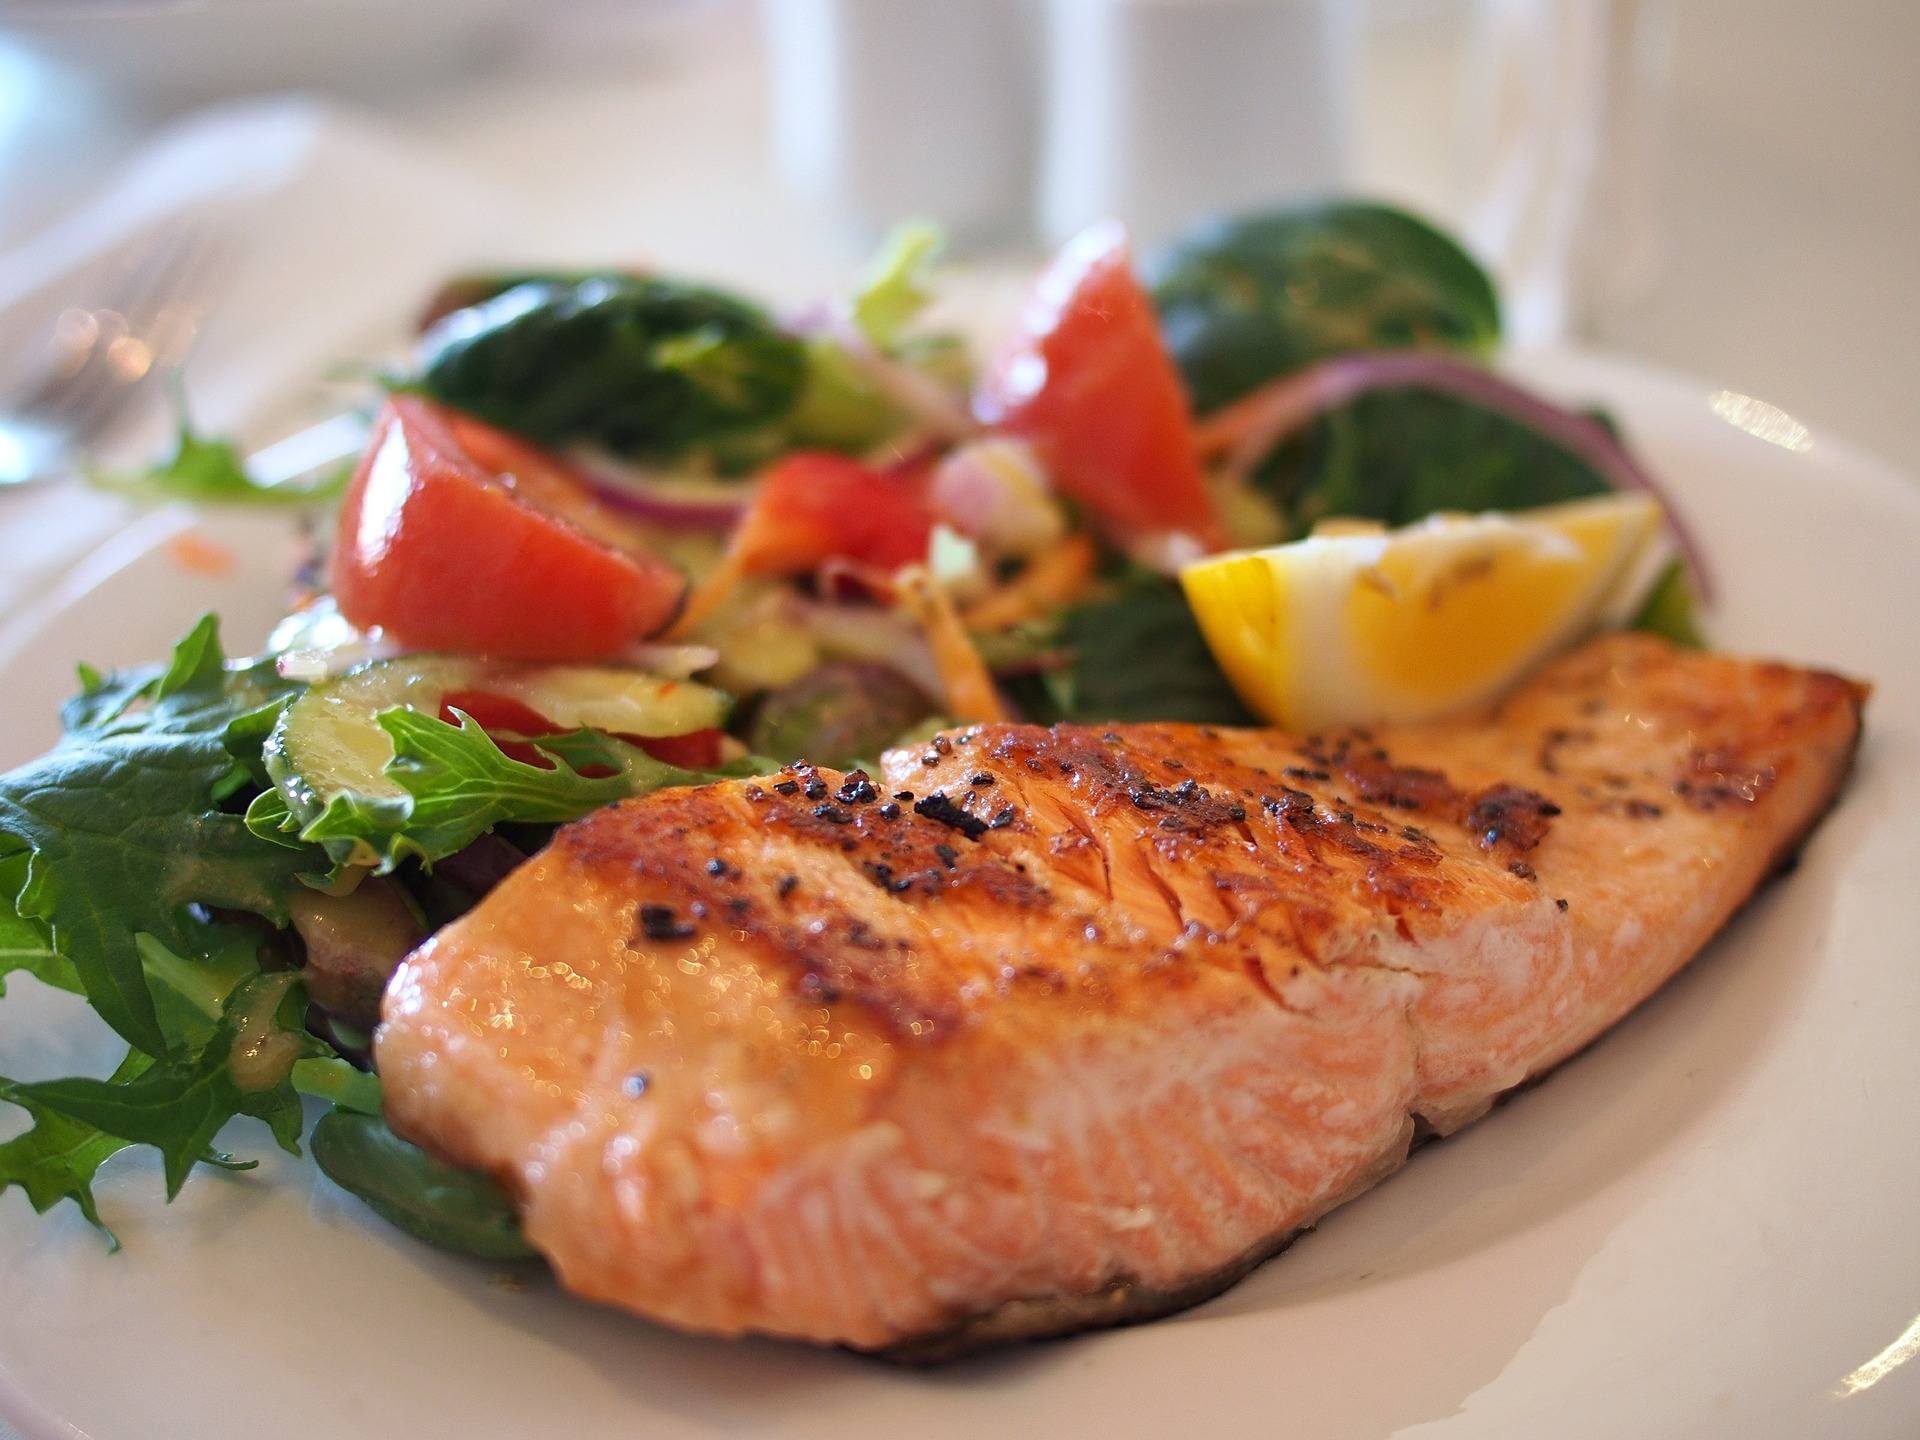 Benefits of Eating Salmon